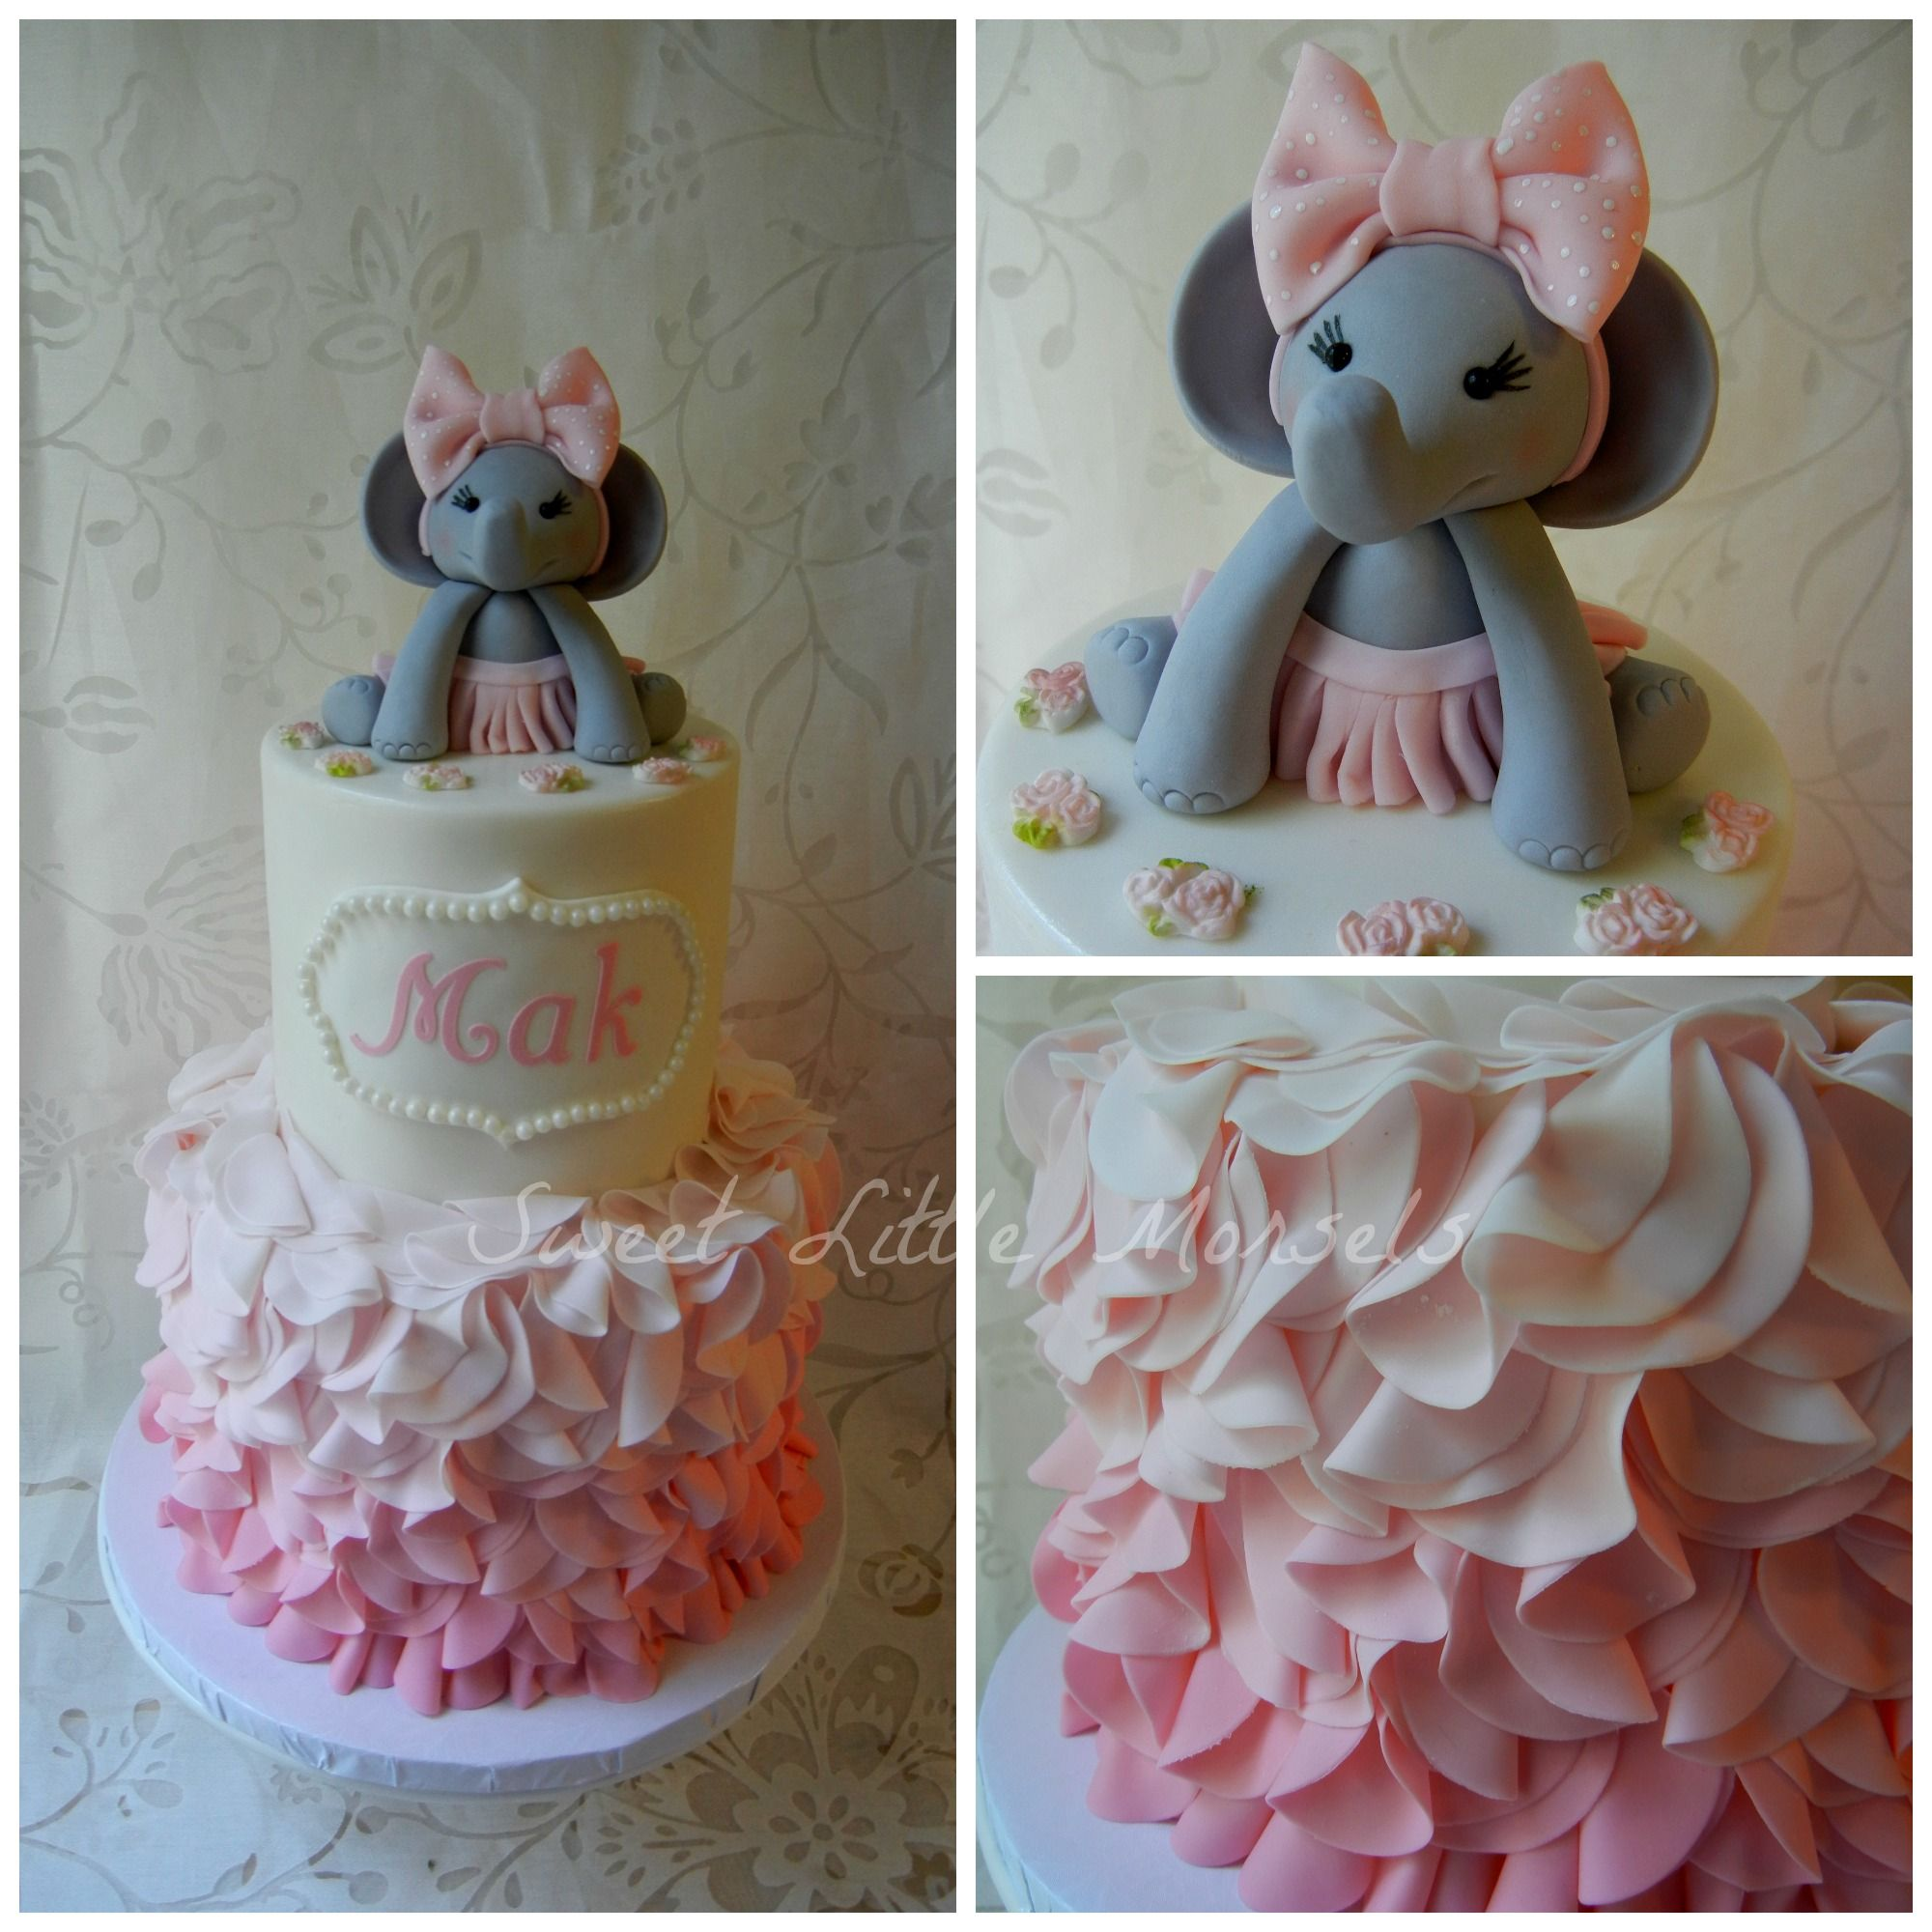 girl baby shower cakes elephant baby shower ideas baby shower elephant baby shower cake. Black Bedroom Furniture Sets. Home Design Ideas